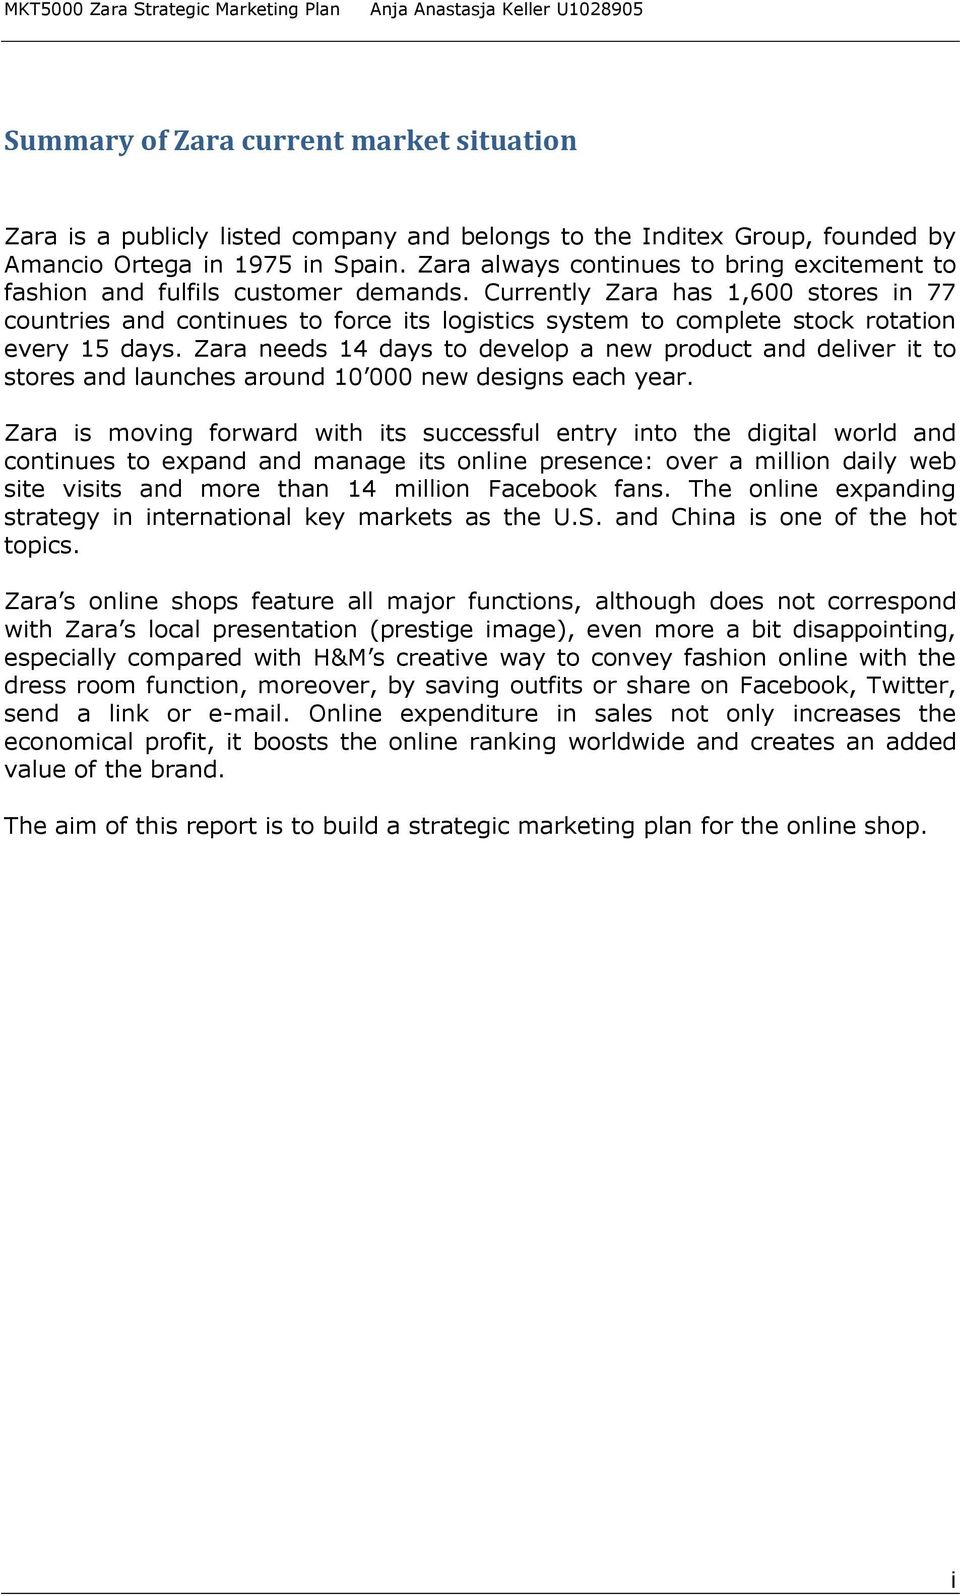 zara summary This page provides a brief financial summary of zara investement holding as well as the most significant critical numbers from each of its financial reports.